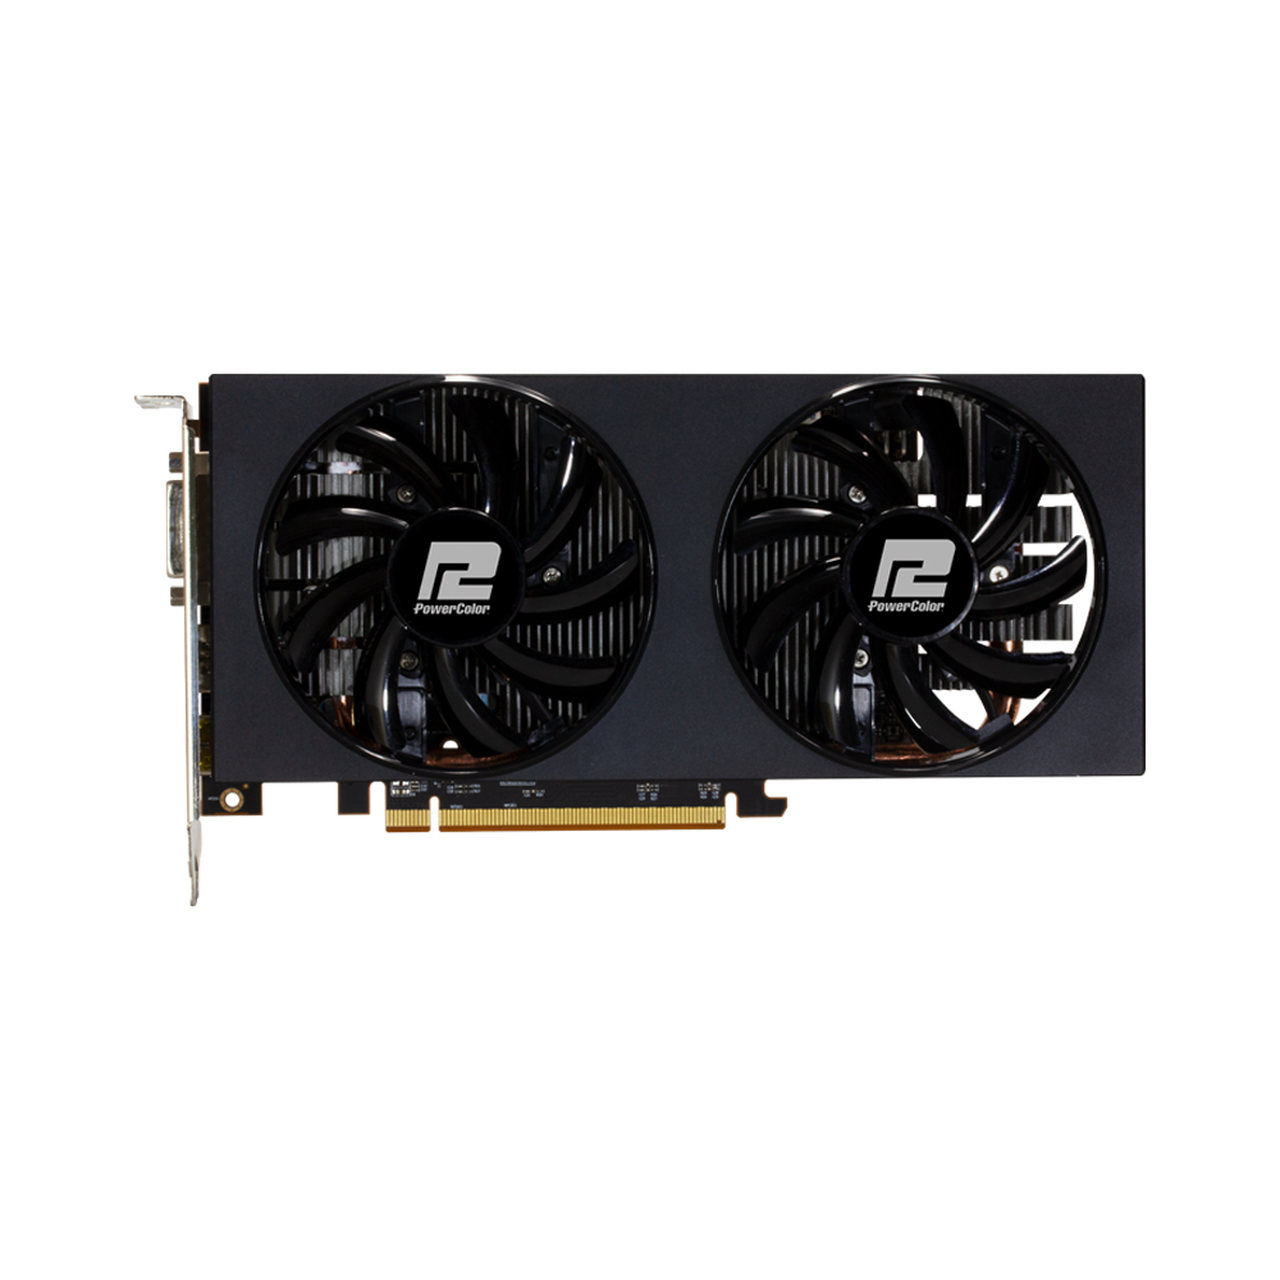 GPU AMD RX5500XT 8GB D6 POWER COLOR 8GBD6-DH/OC 1A1-G00325500G